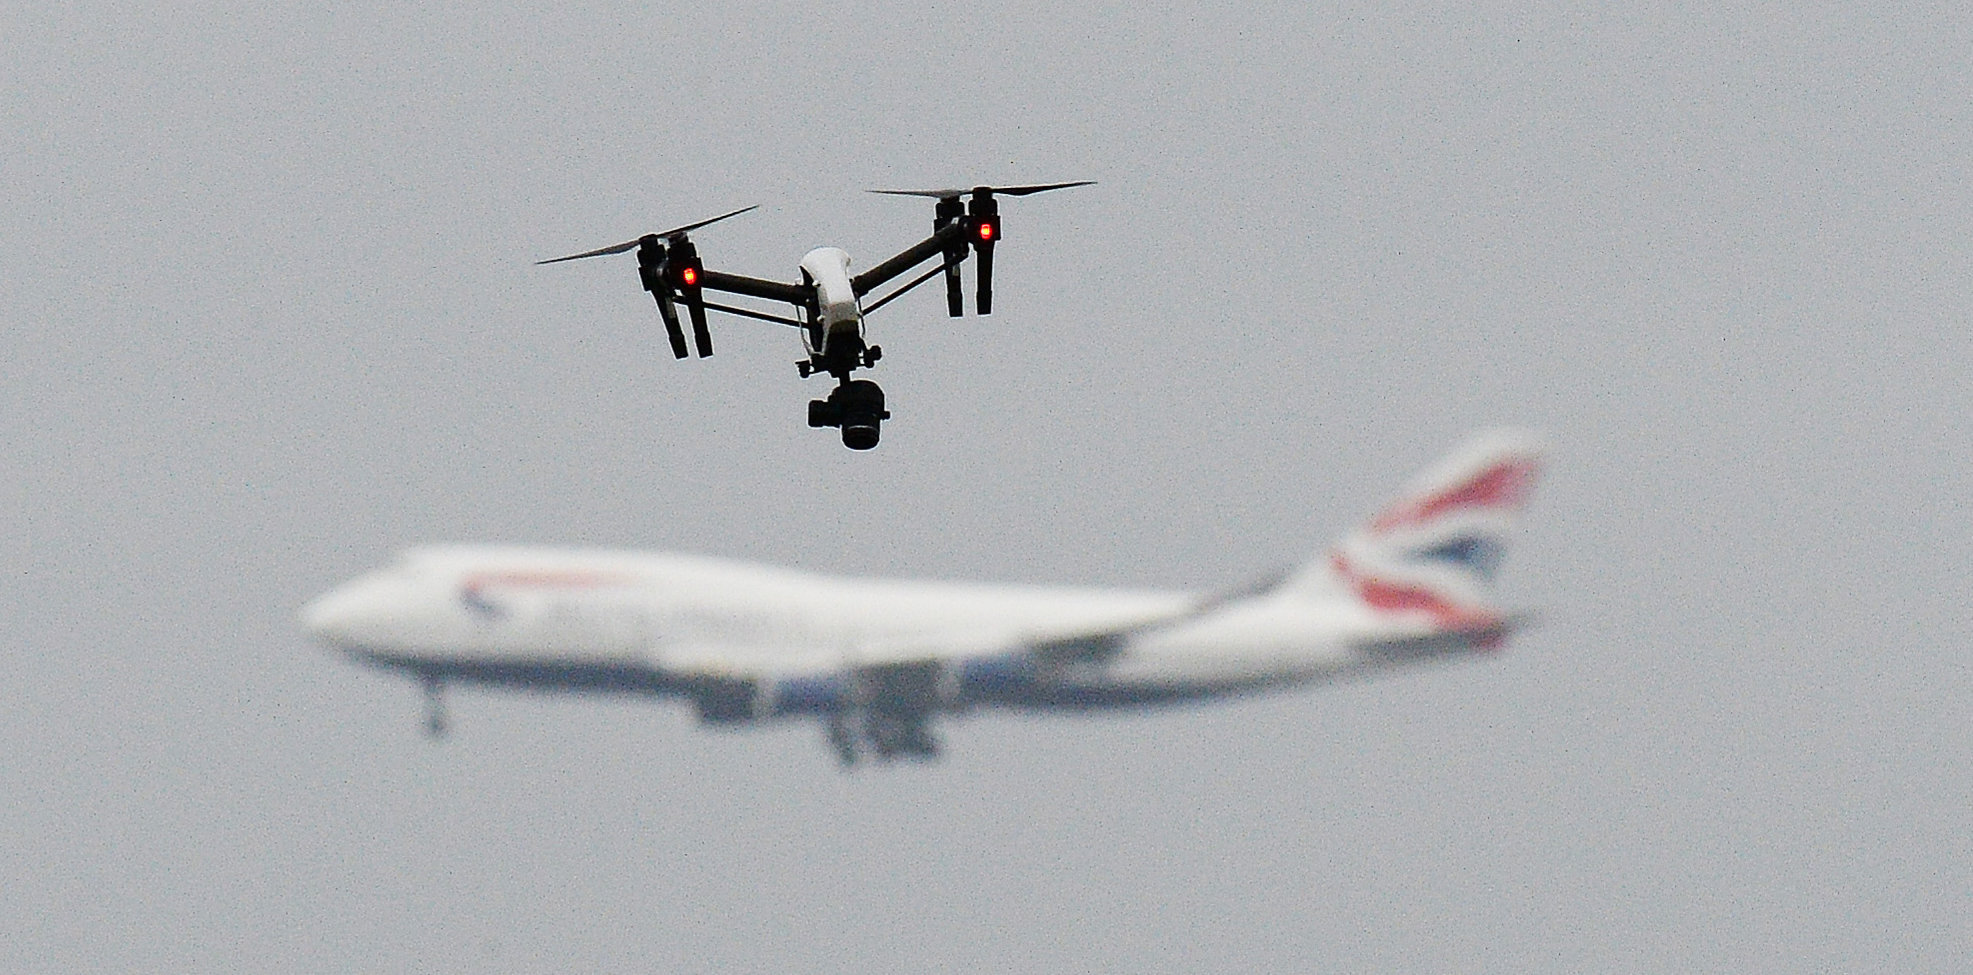 FILE PHOTO dated 25/2/2017 of a drone and an aircraft. Gatwick airport remains closed this morning after drones were spotted over the airfield last night and this morning.  PRESS ASSOCIATION Photo. Issue date: Thursday December 20, 2018. See PA story AIR